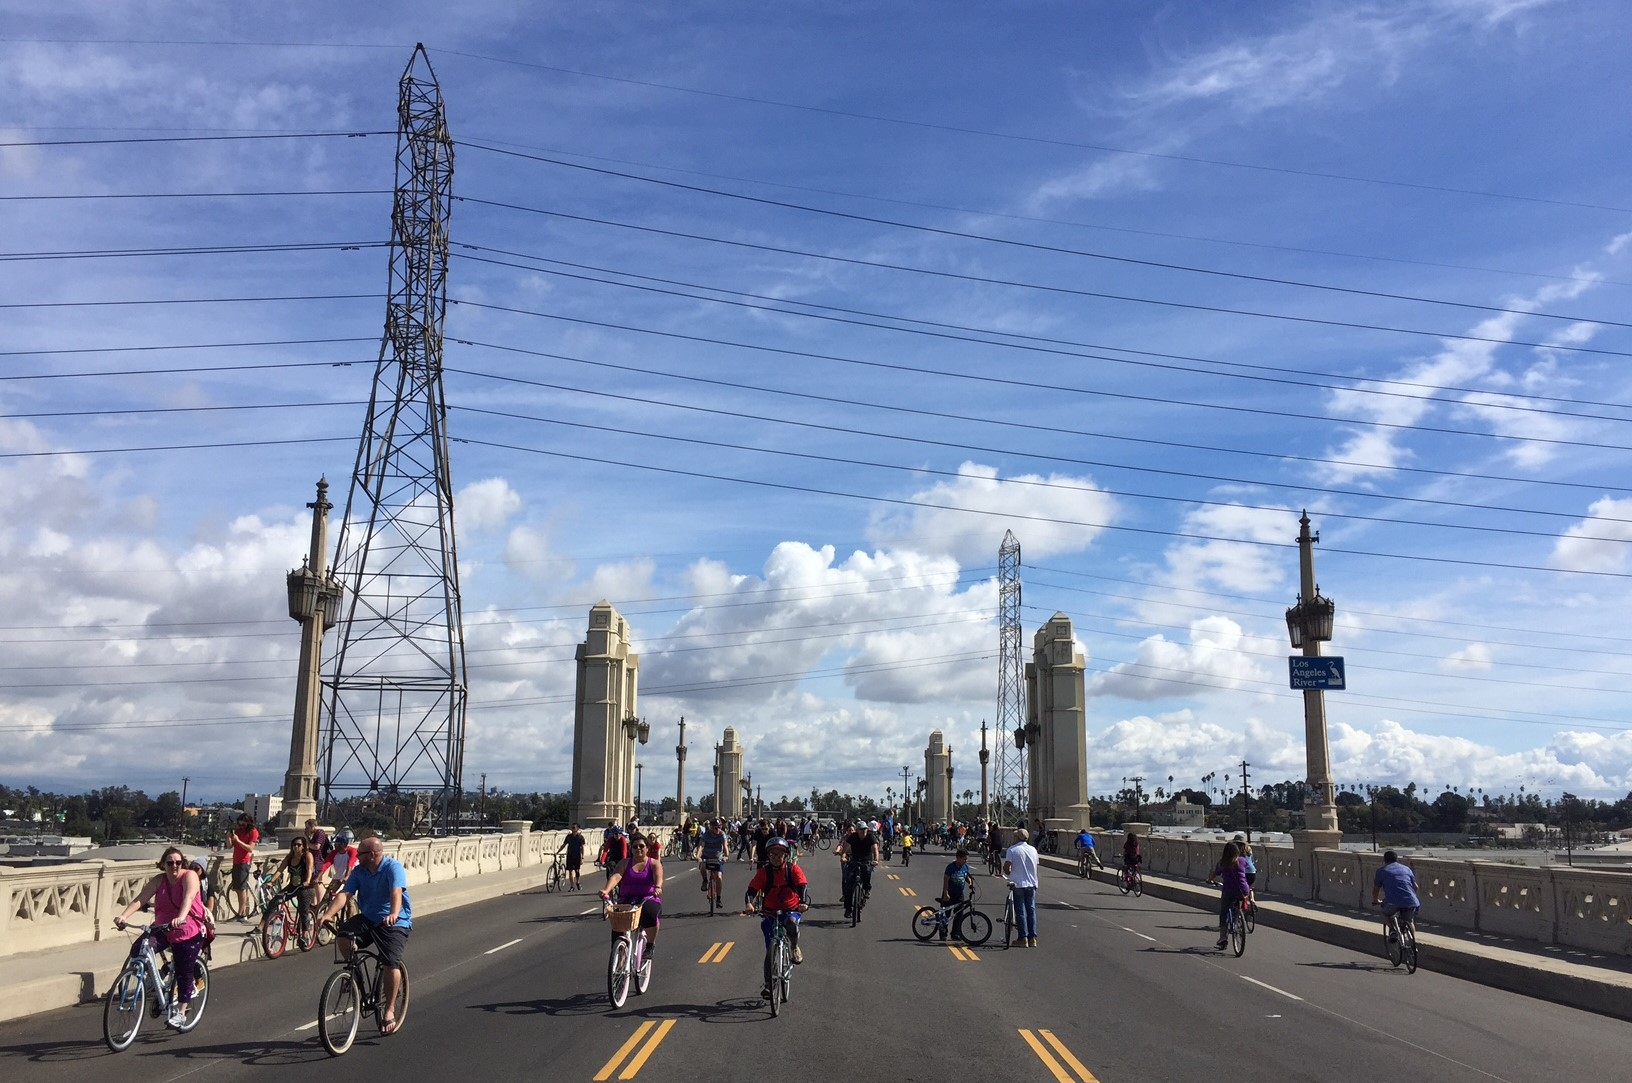 #ciclavia hashtag on Instagram • Photos and Videos